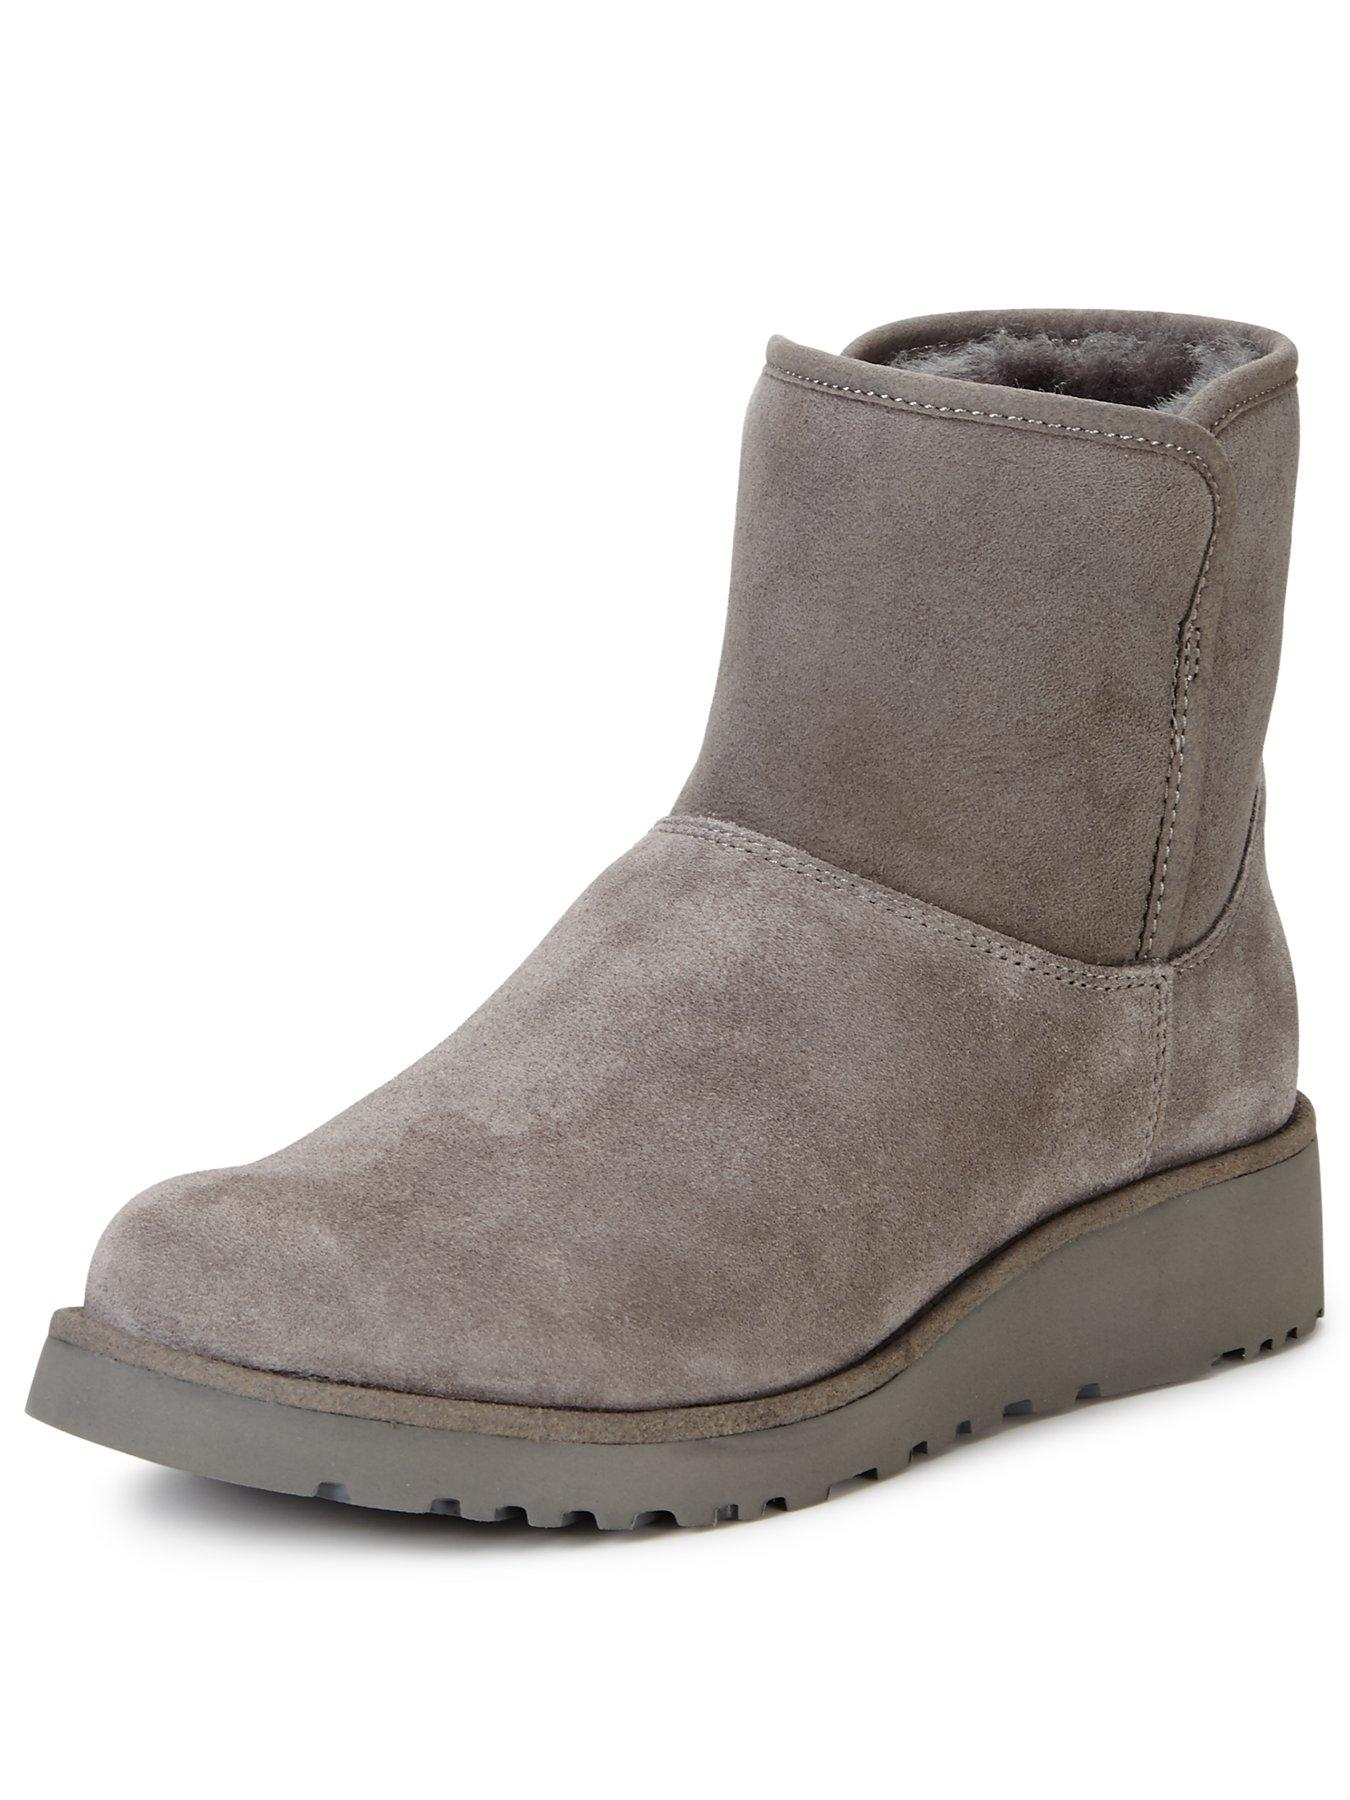 ugg wedge boots ireland